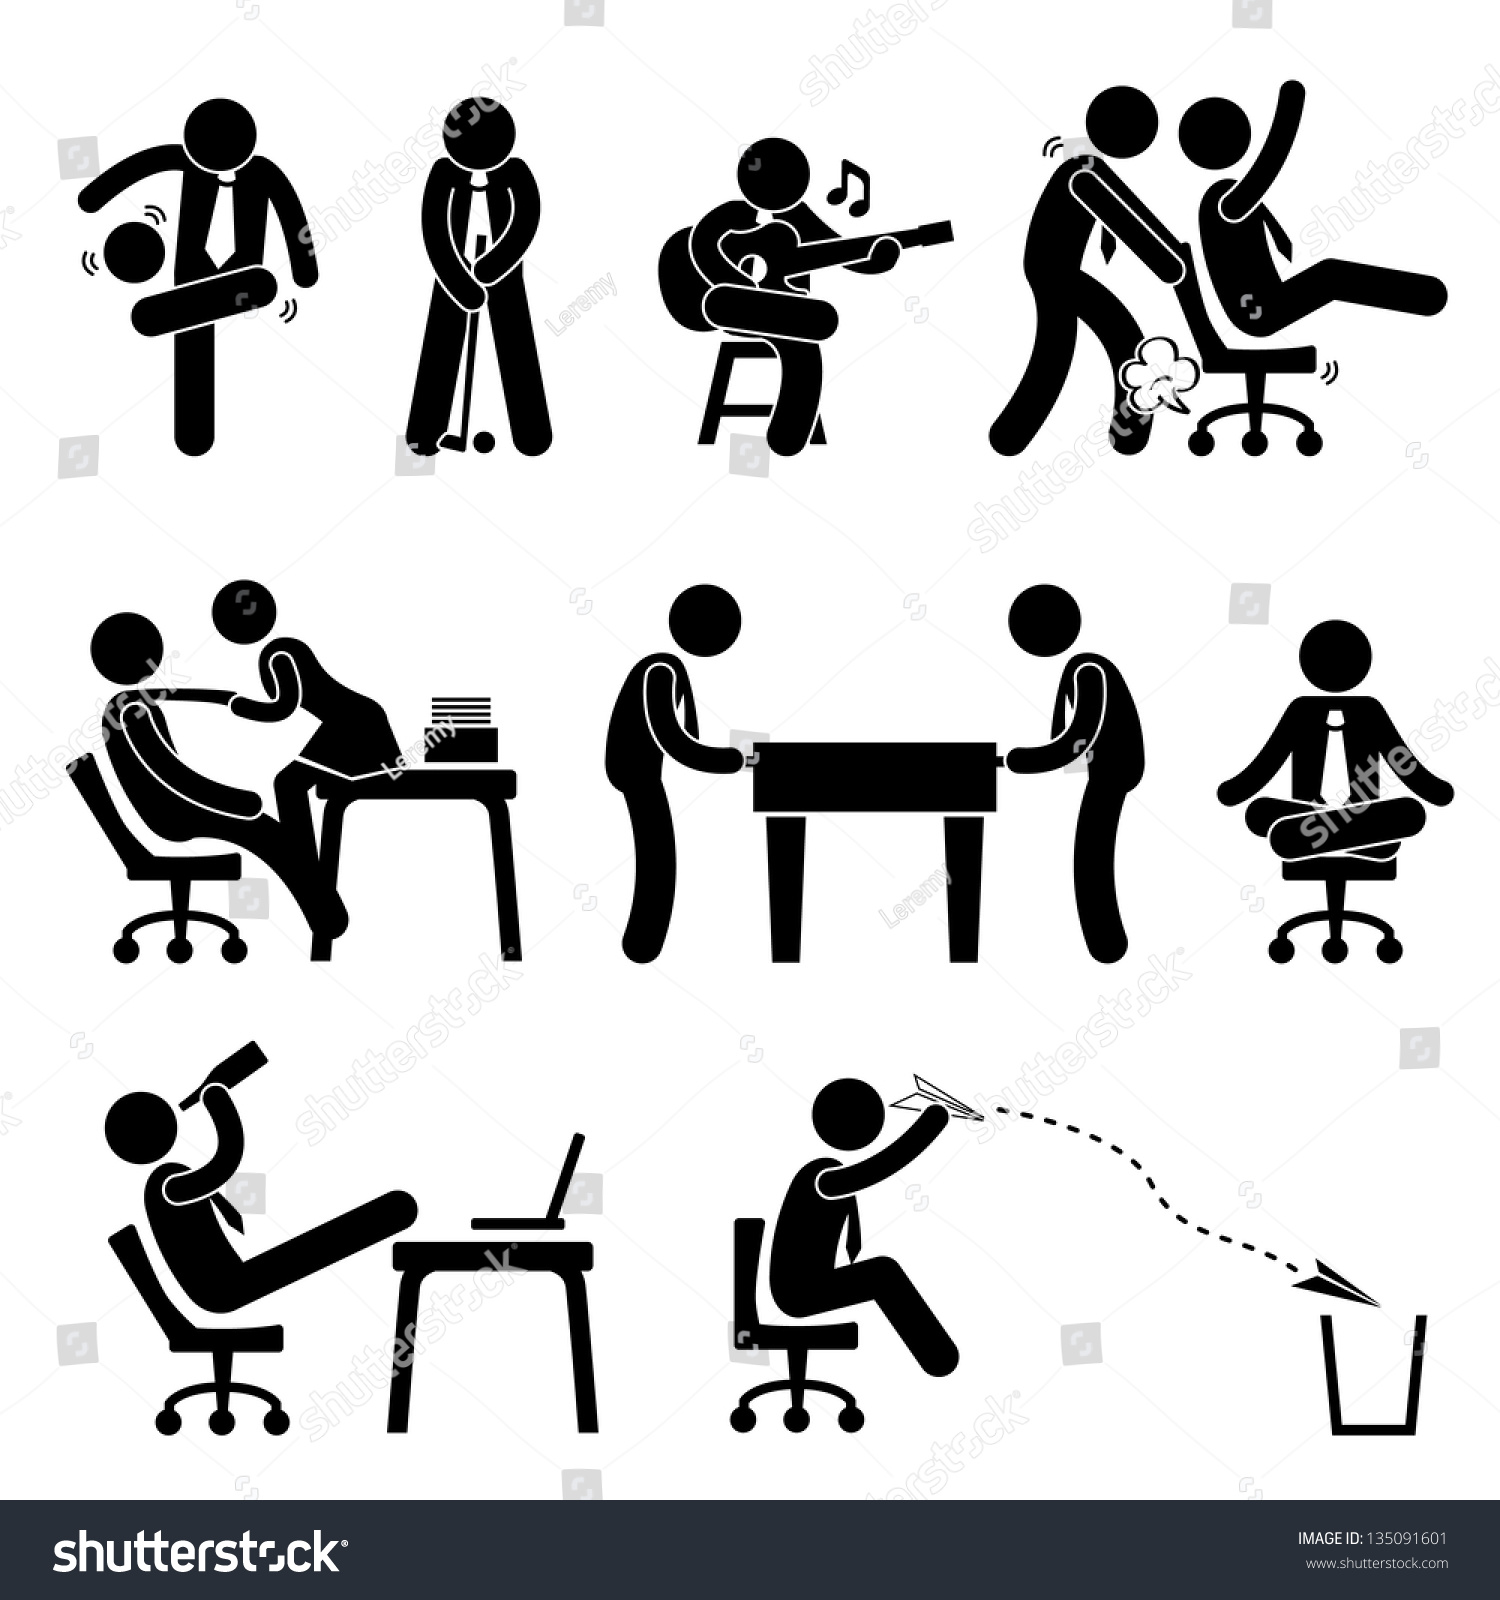 flirting moves that work for men images black and white people clipart